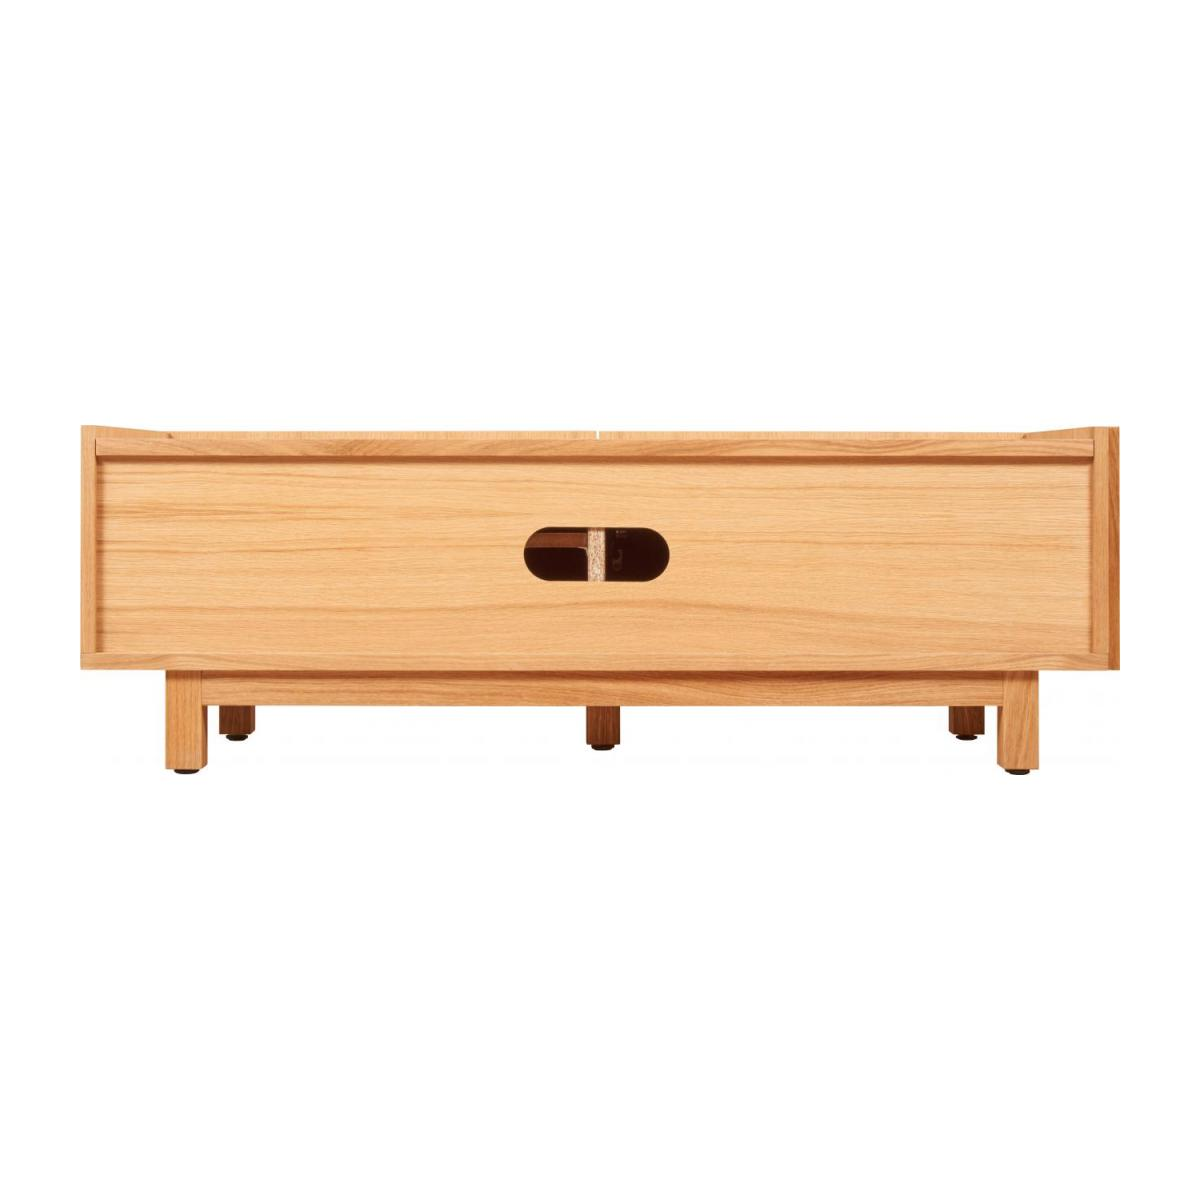 Audio video oak stand n°6